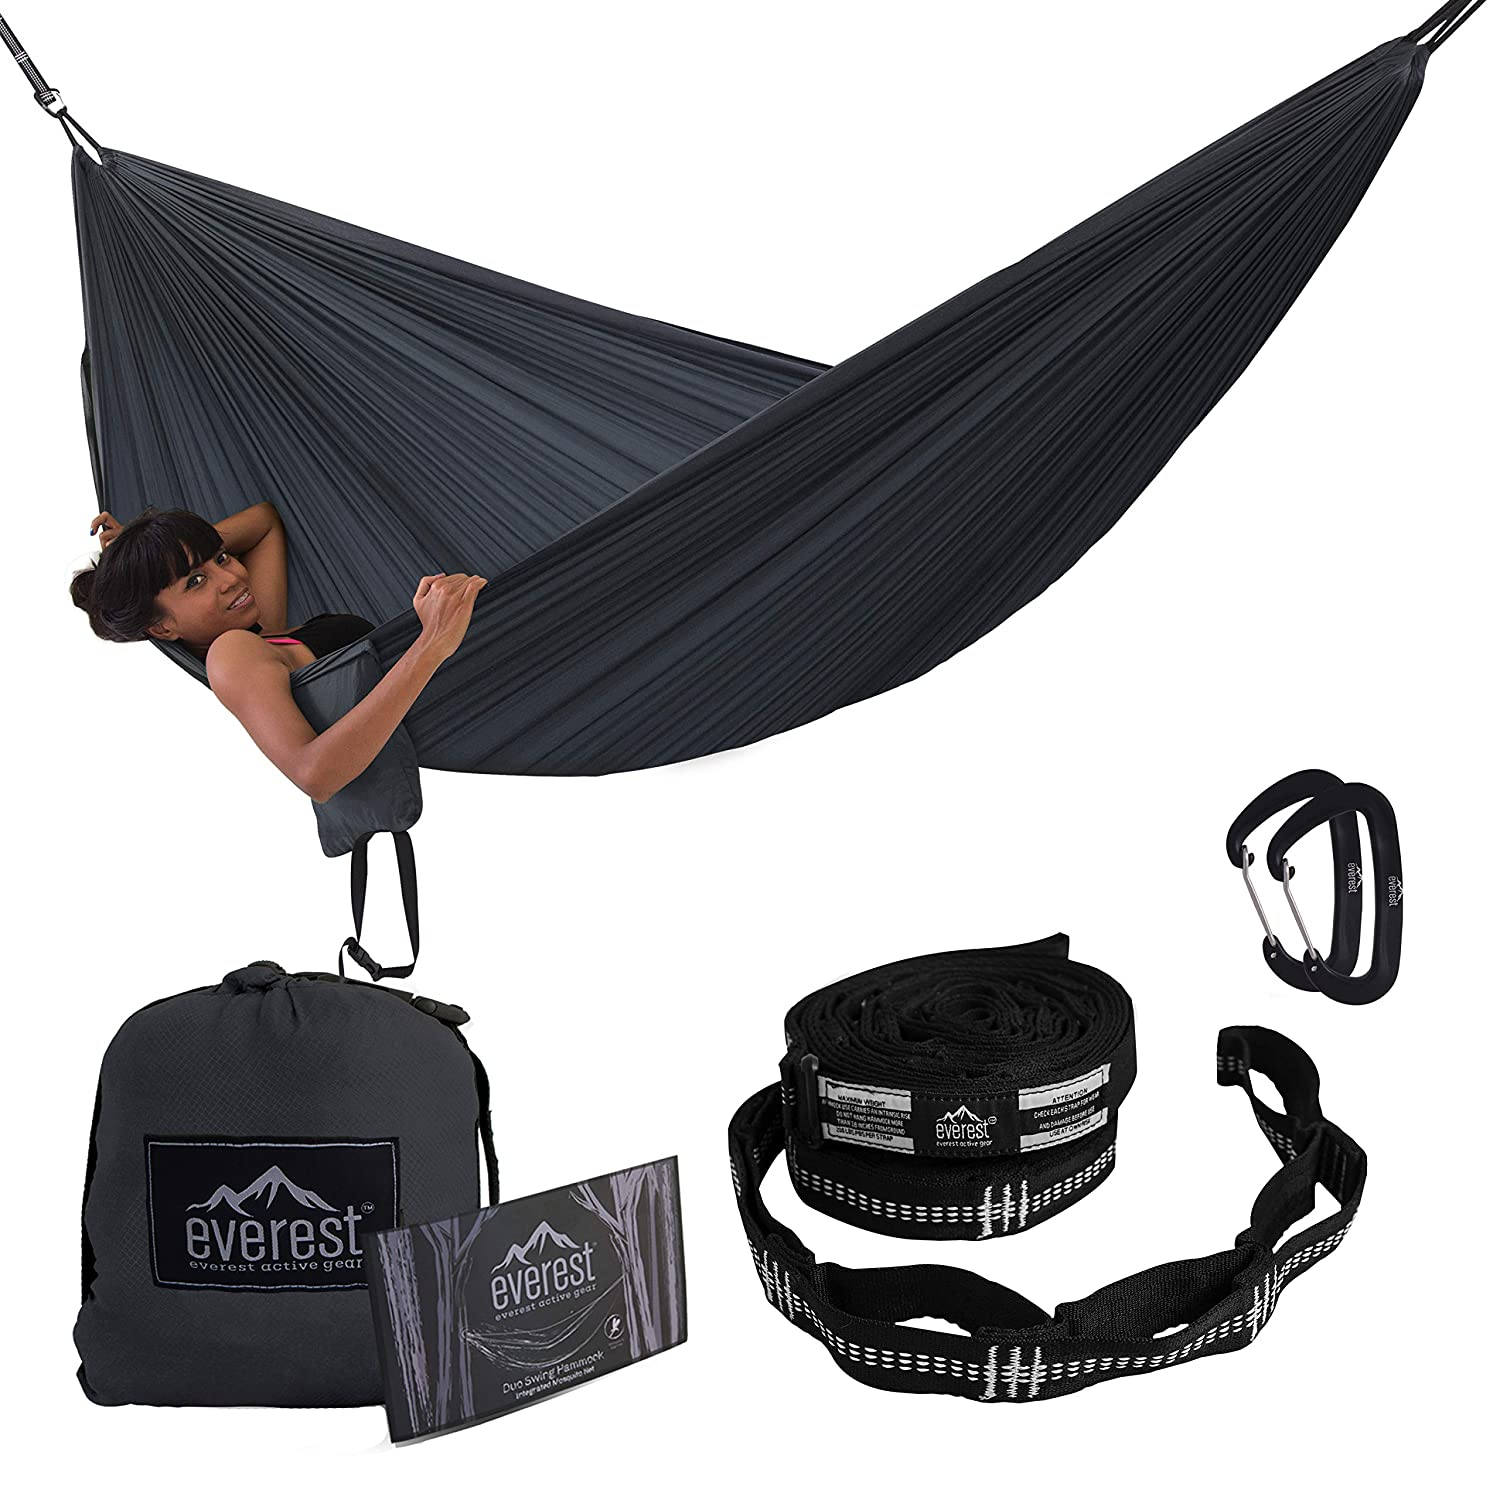 Backpacking /& Travel Camping Hammock Double Outdoor Hammocks with Carabiners /& Tree Saver Straps Parachute Ripstop Diamond Weave Nylon Lightweight Portable for Hiking Everest